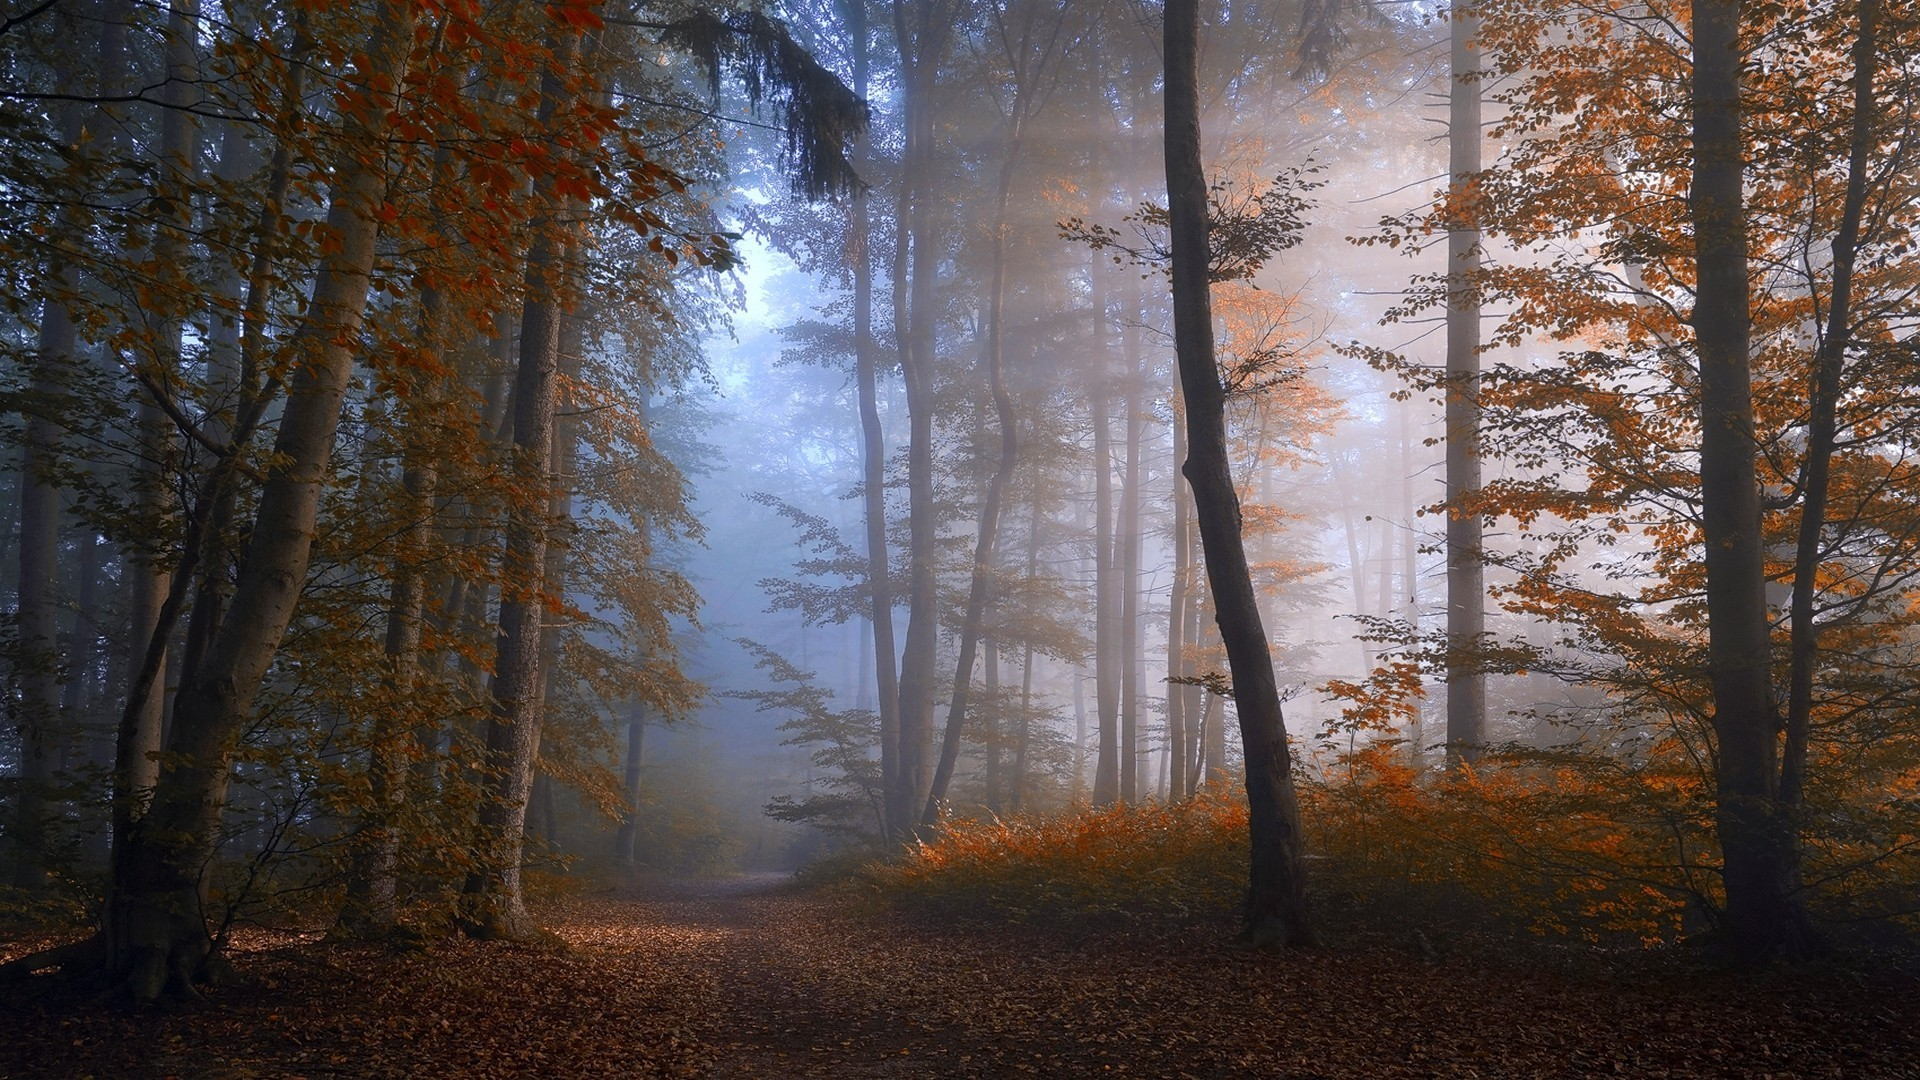 Fall Wallpaper Backgrounds Desktop Nature Landscape Forest Fall Mist Path Trees